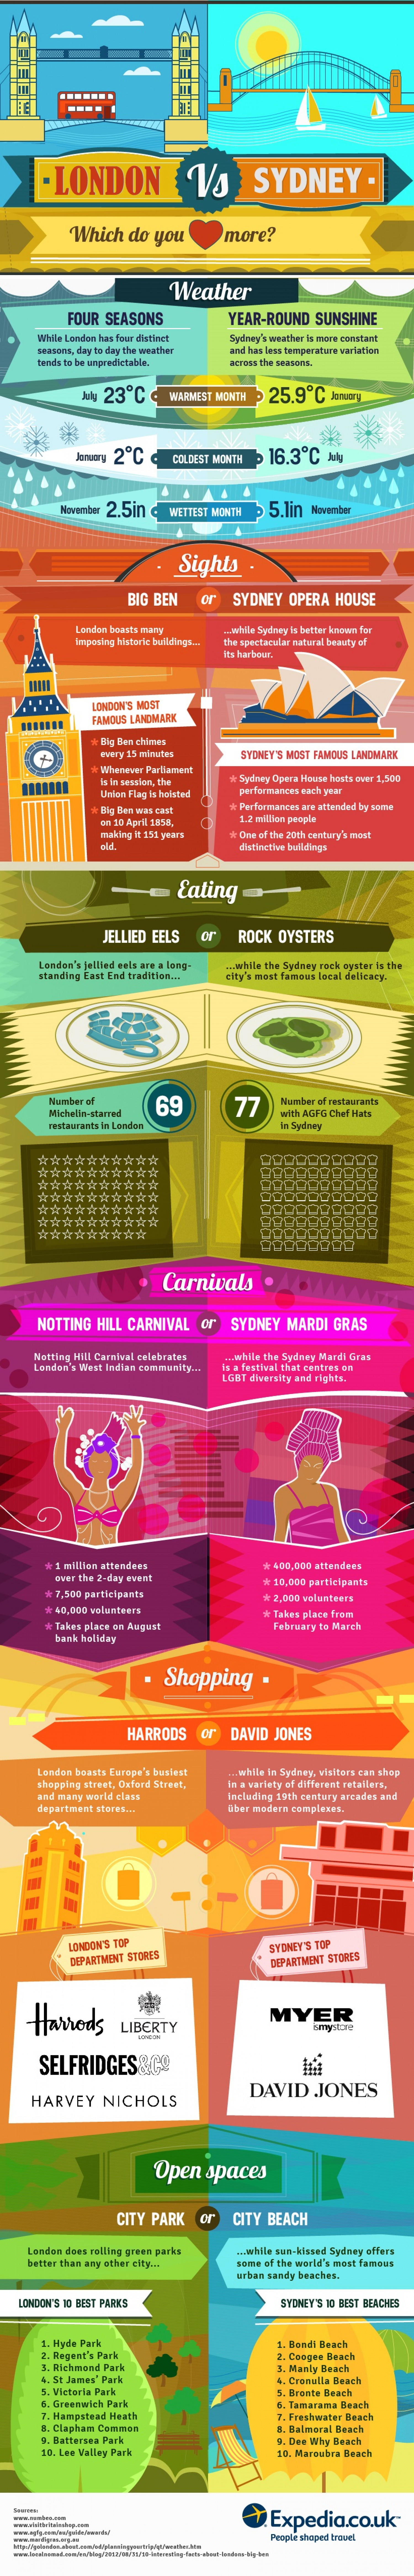 London vs. Sydney Infographic